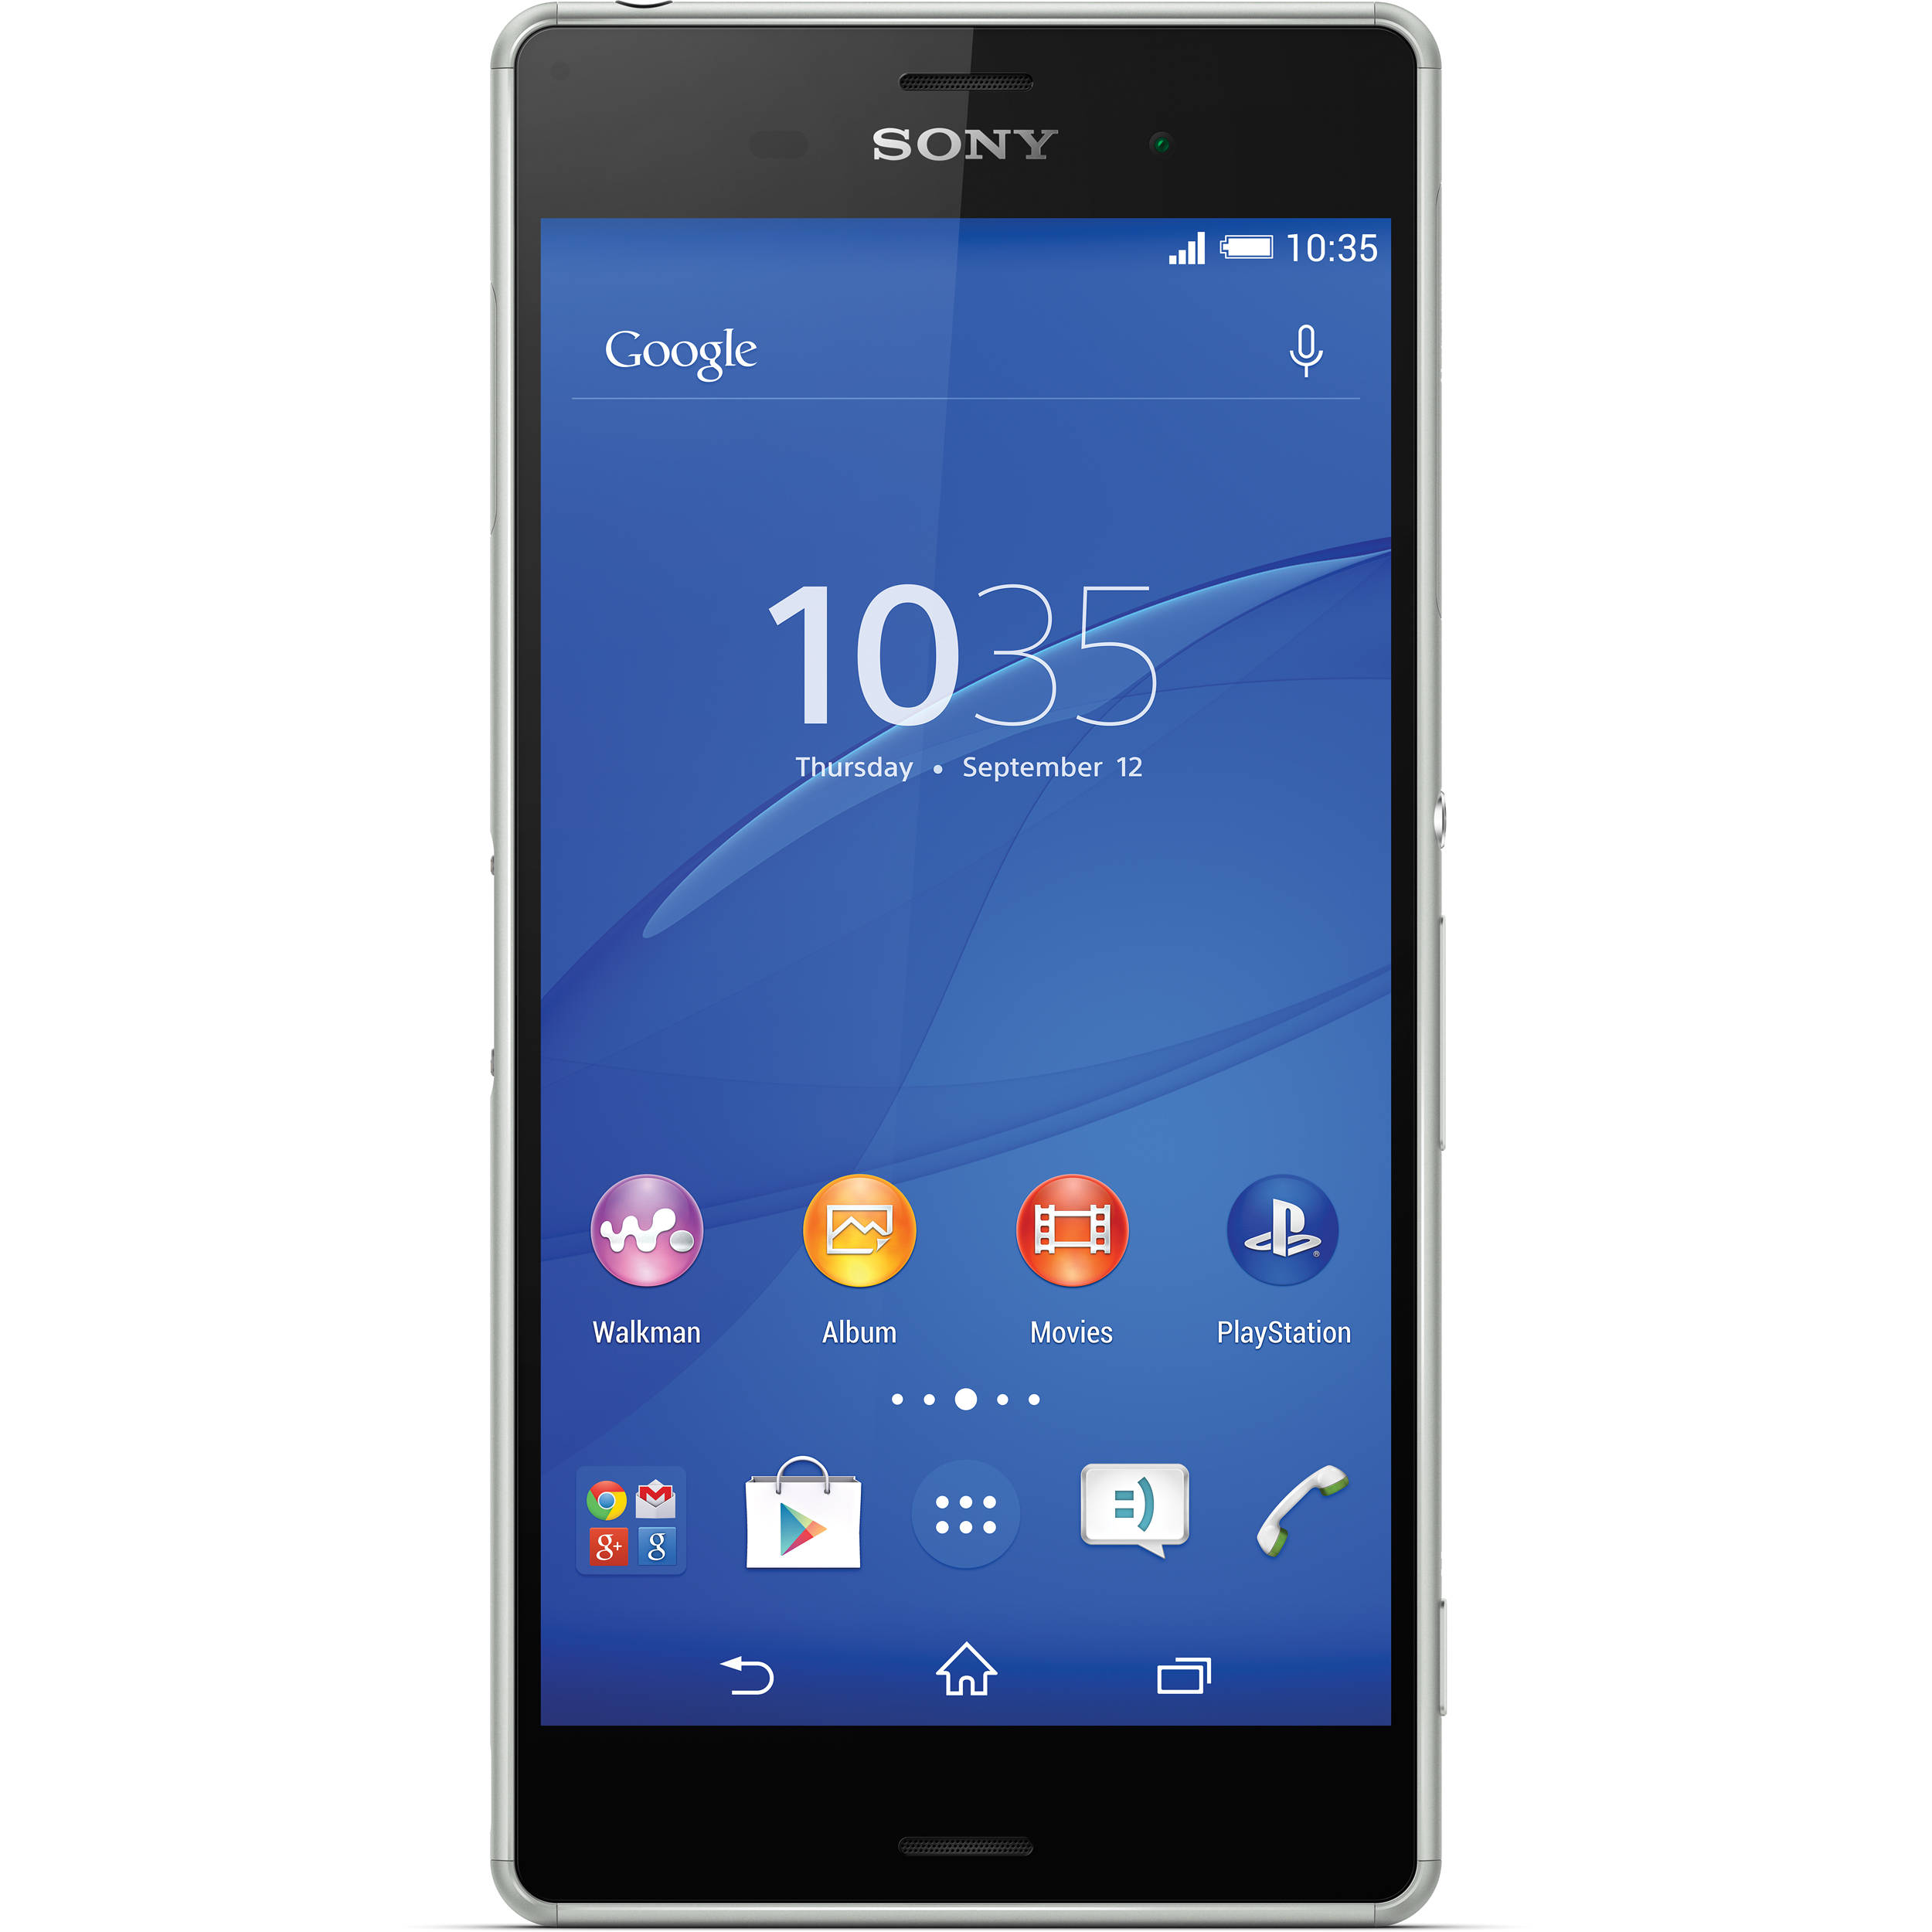 sony xperia z3 d6603 16gb smartphone 1289 4874 b h photo video. Black Bedroom Furniture Sets. Home Design Ideas